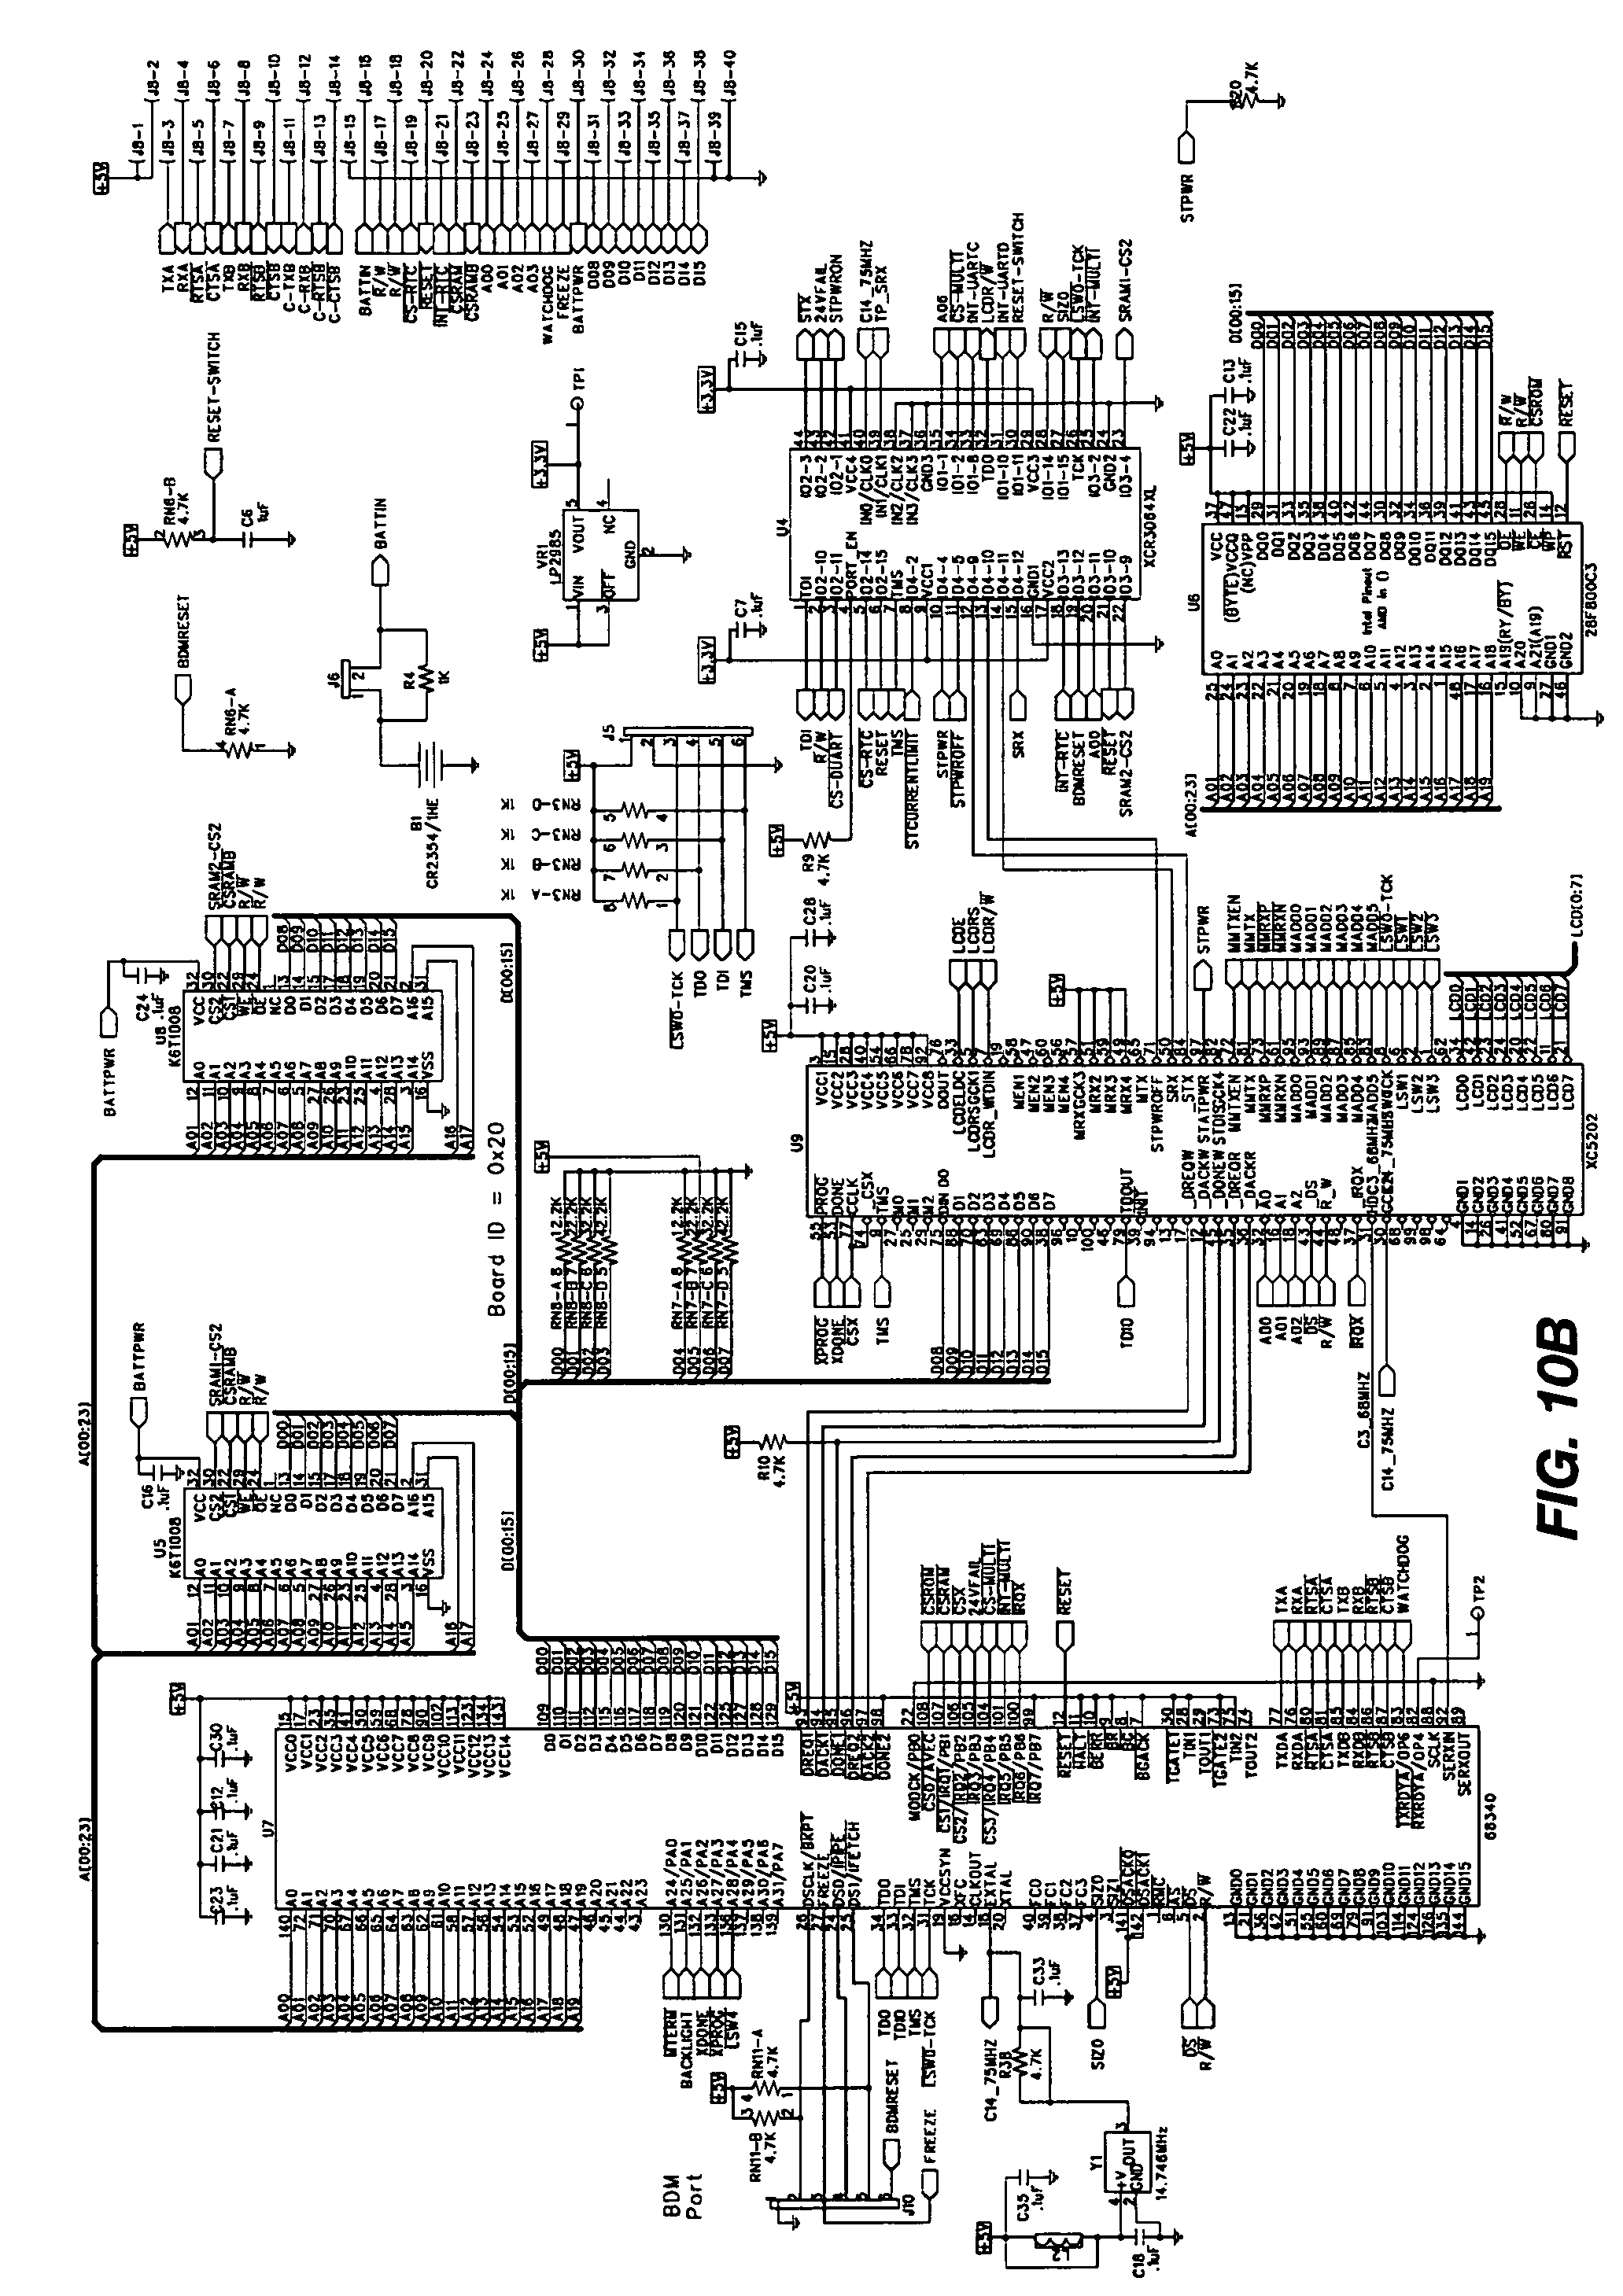 Patent Us 7755506 B1 Diagram Likewise T1 Crossover Cable On Pinout Images